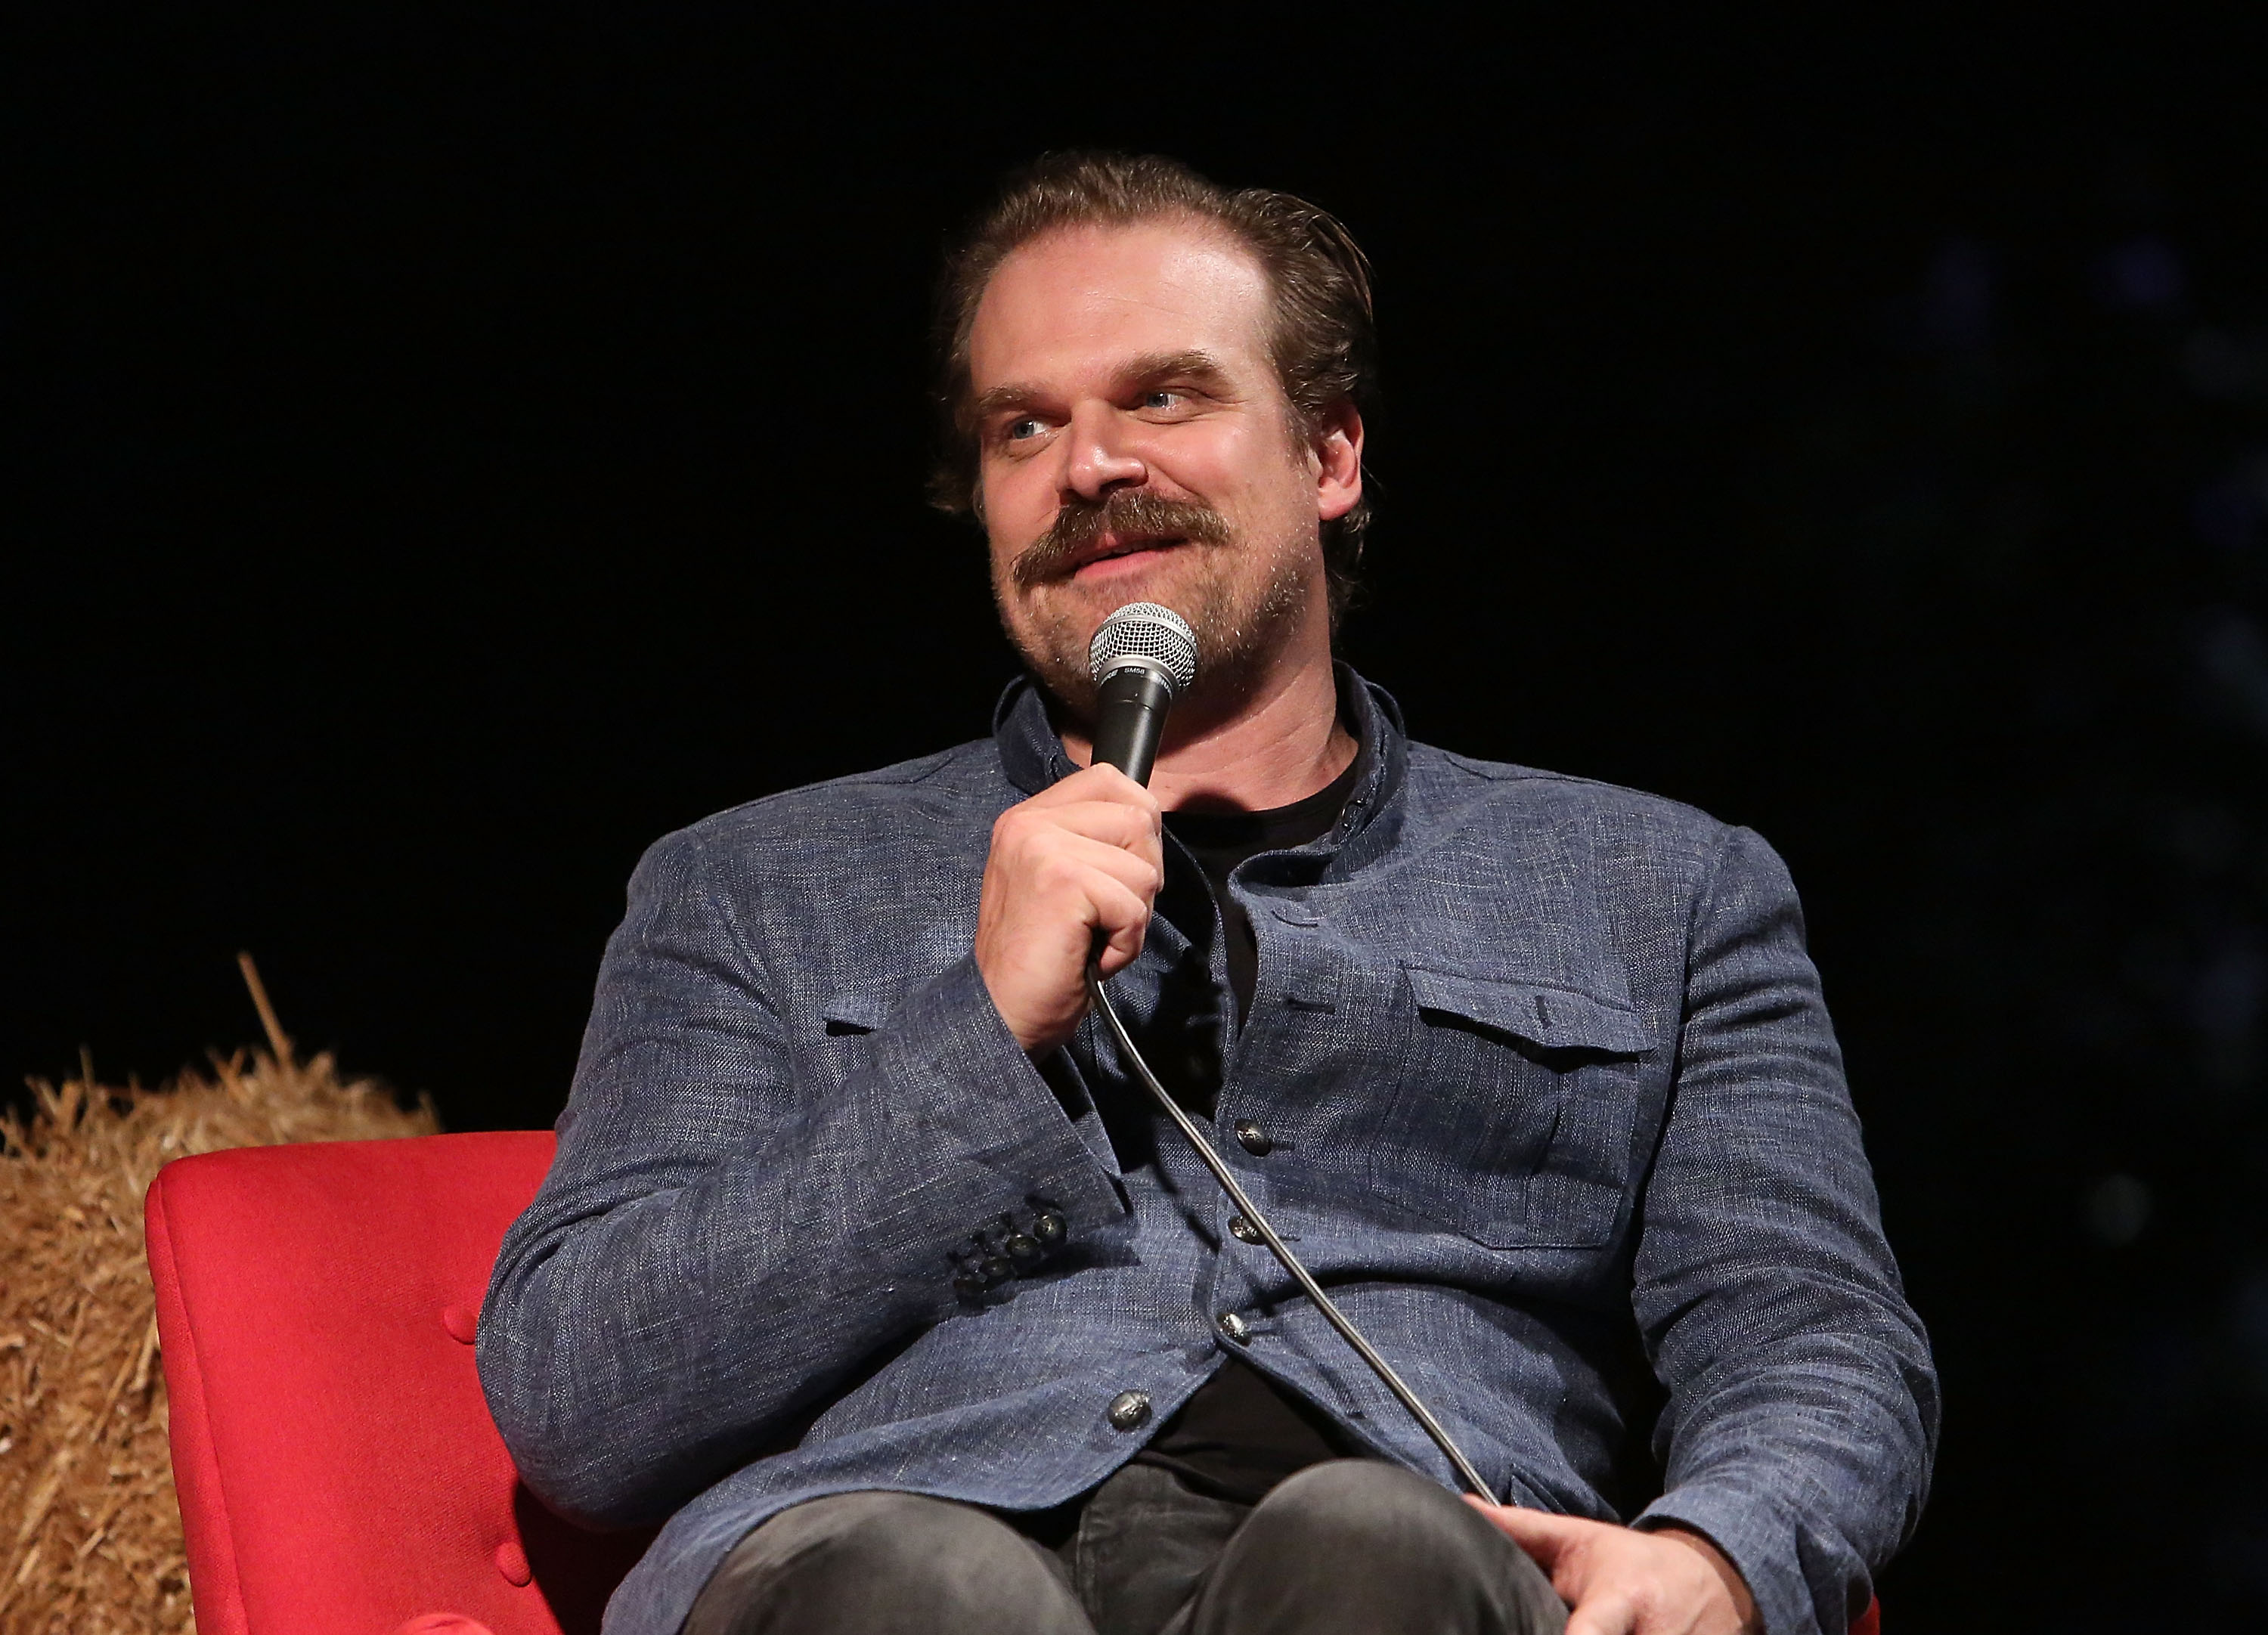 """HOLLYWOOD, CA - AUGUST 17: David Harbour attends Netflix's """"Stranger Things"""" 12 Emmy nominations celebration at Hollywood Forever on August 17, 2018 in Hollywood, California. (Photo by Jesse Grant/WireImage)"""